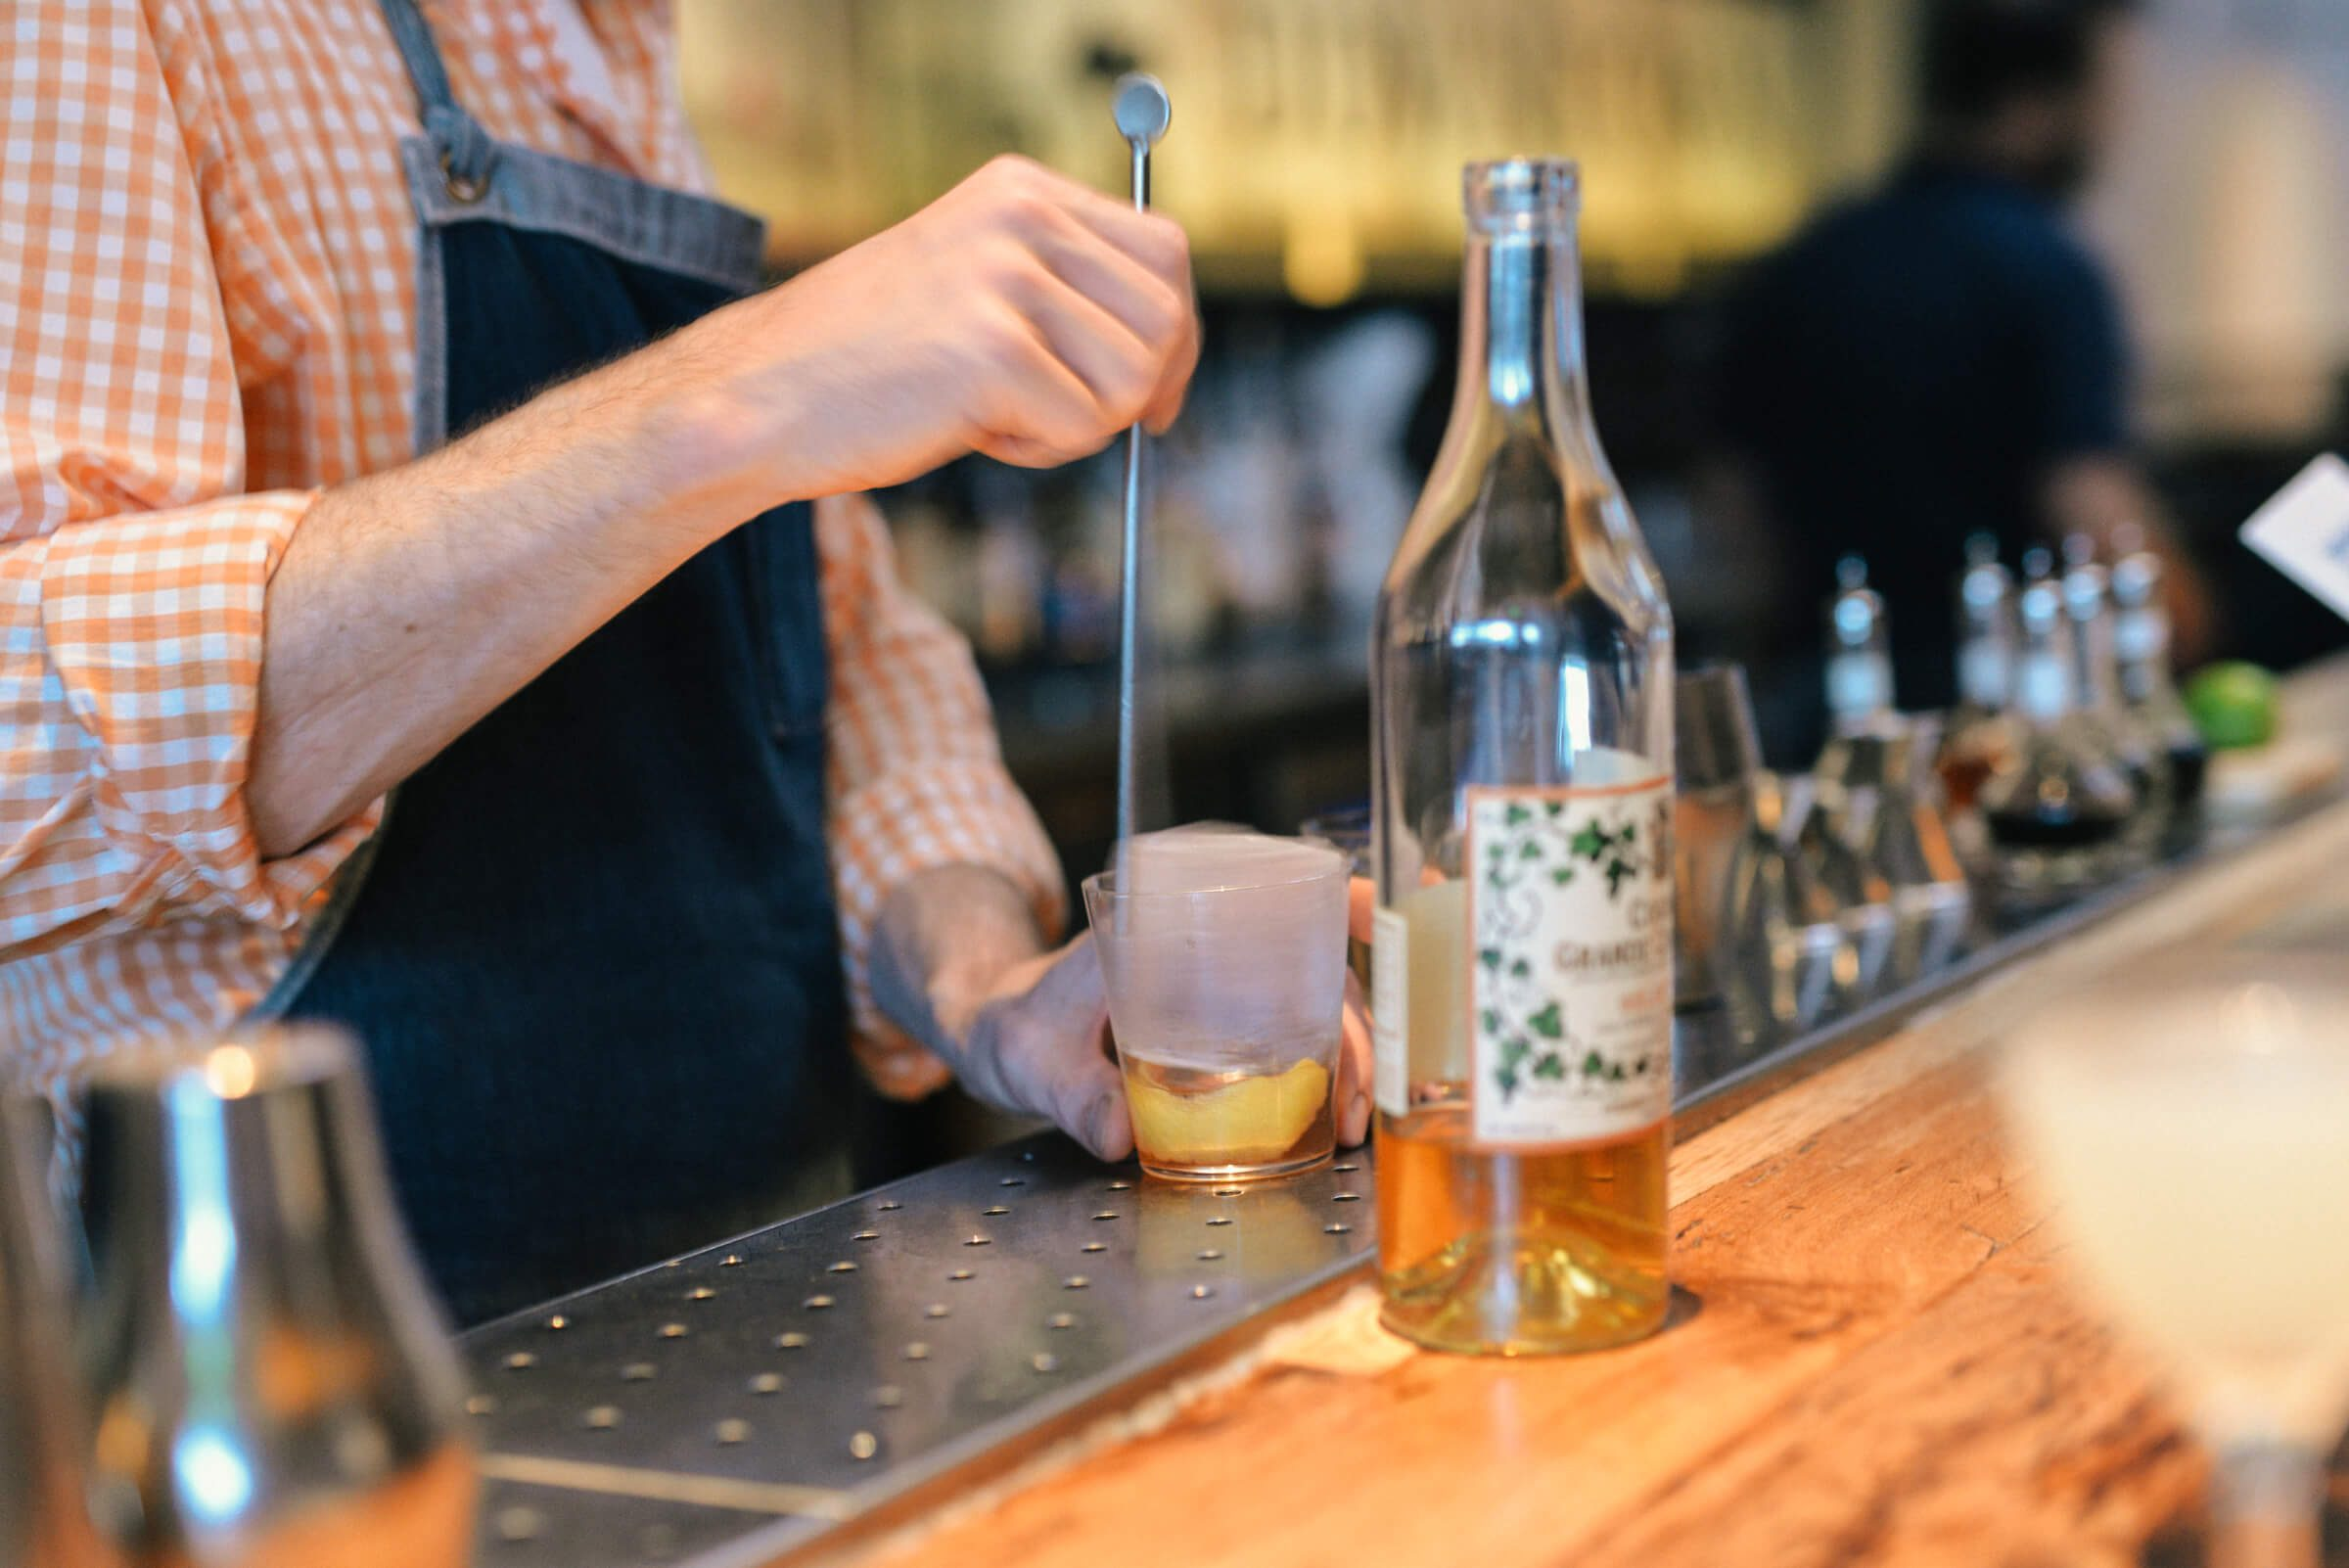 Mixing drinks at Bar Agricole in San Francisco, The Taste SF